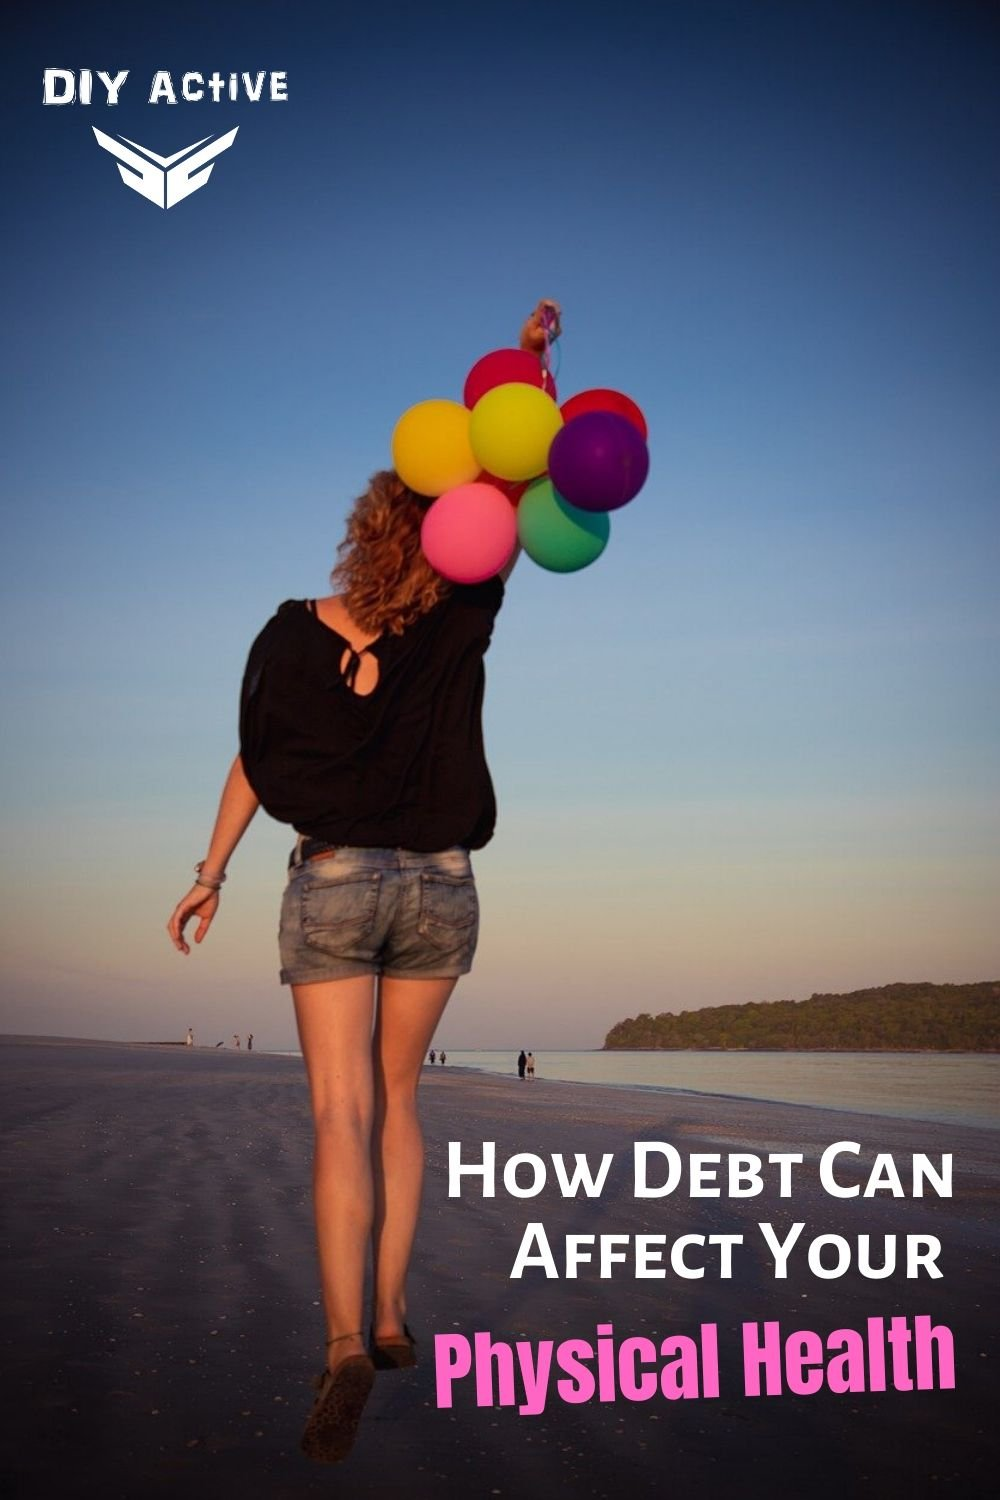 How Debt Can Affect Your Physical Health